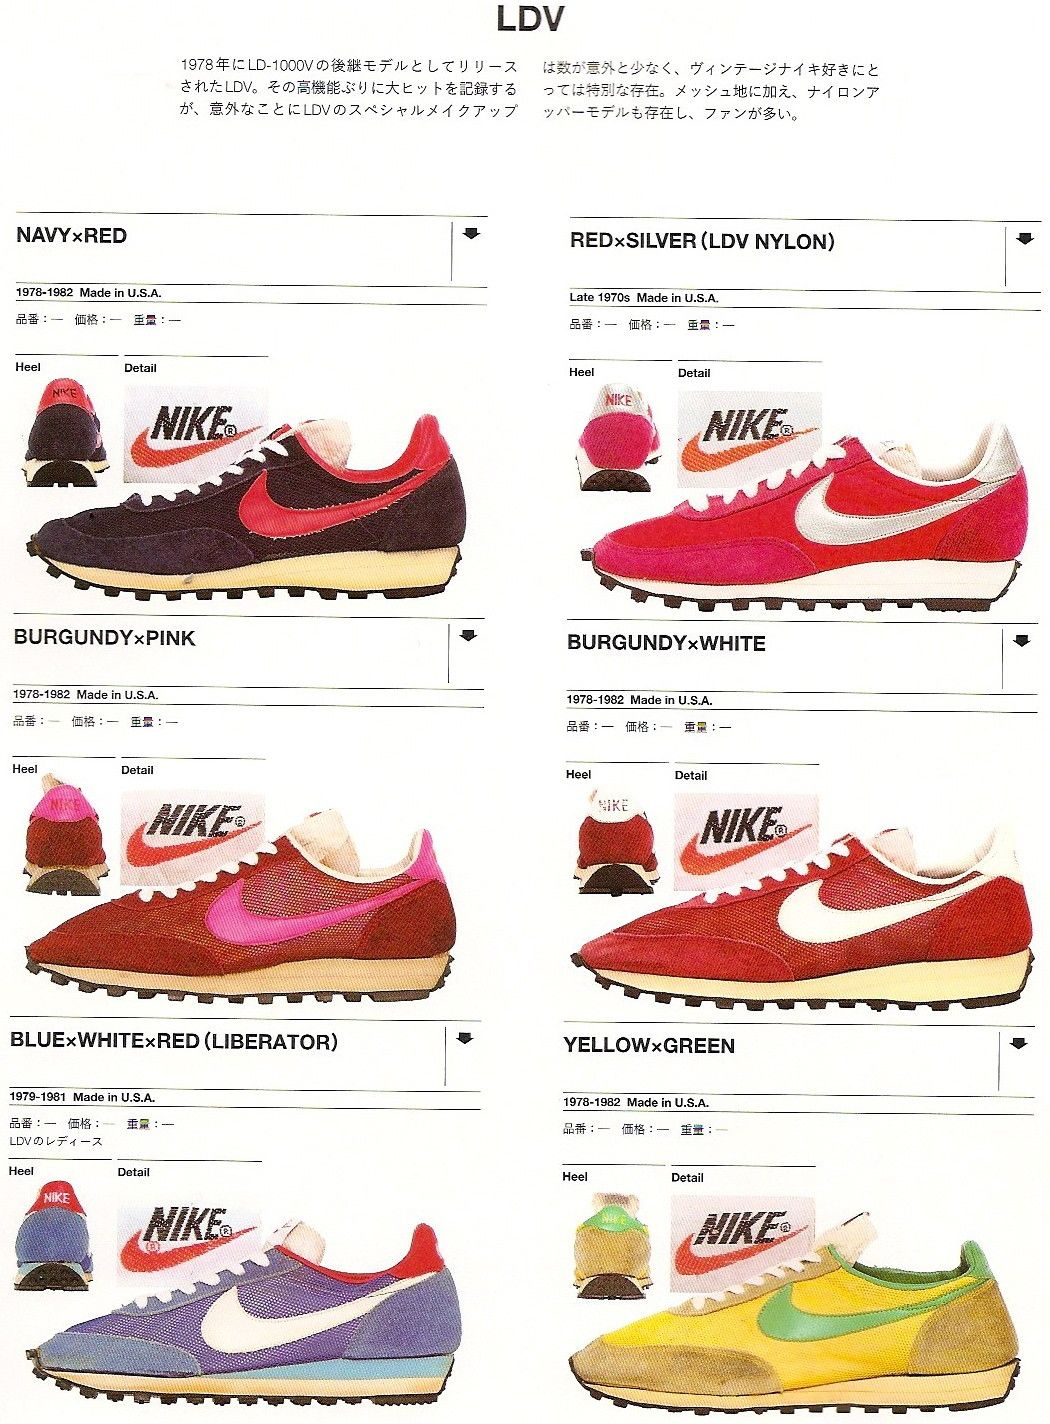 low priced 6e42f 376d8 Vintage Sneakers, Retro Turnschuhe, Vintage Schuhe, Turnschuhe Nike, Nike  Retro, Nike